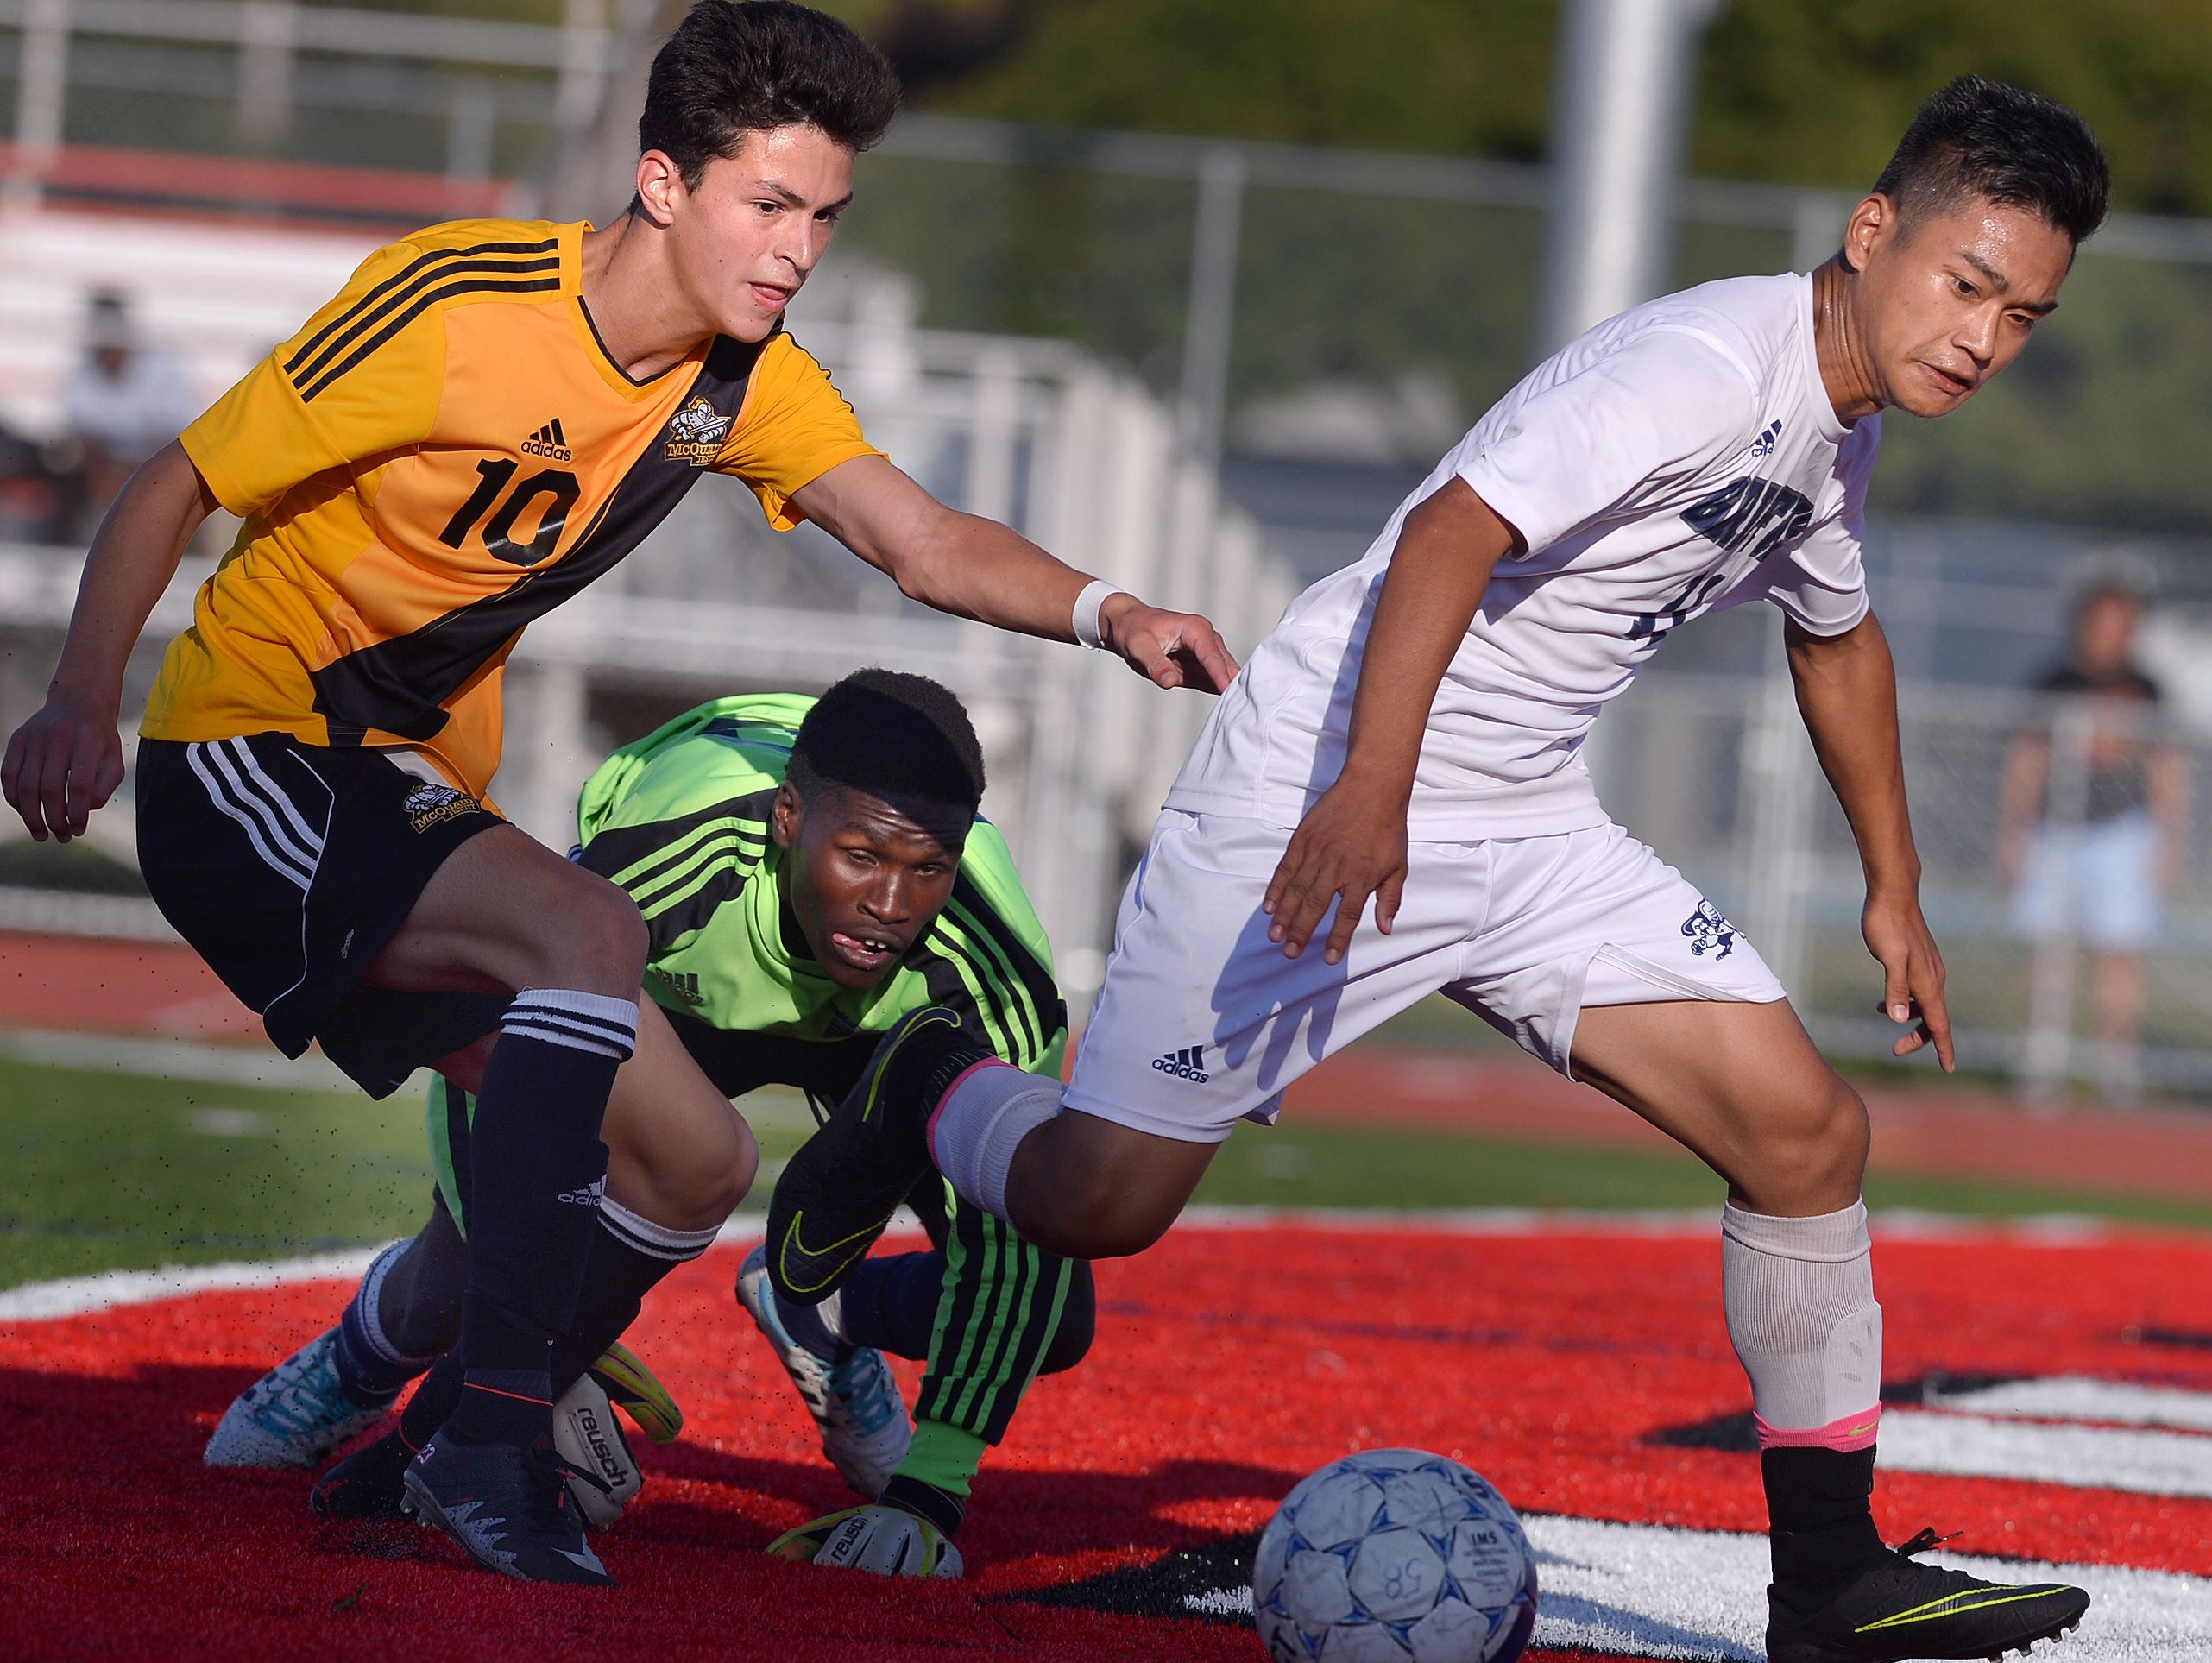 McQuaid's Dan Malloy, left, chases a loose ball with World of Inquiry goalie Jean Sindayihebura and Wah Gay Doh during a game on Sept. 21.